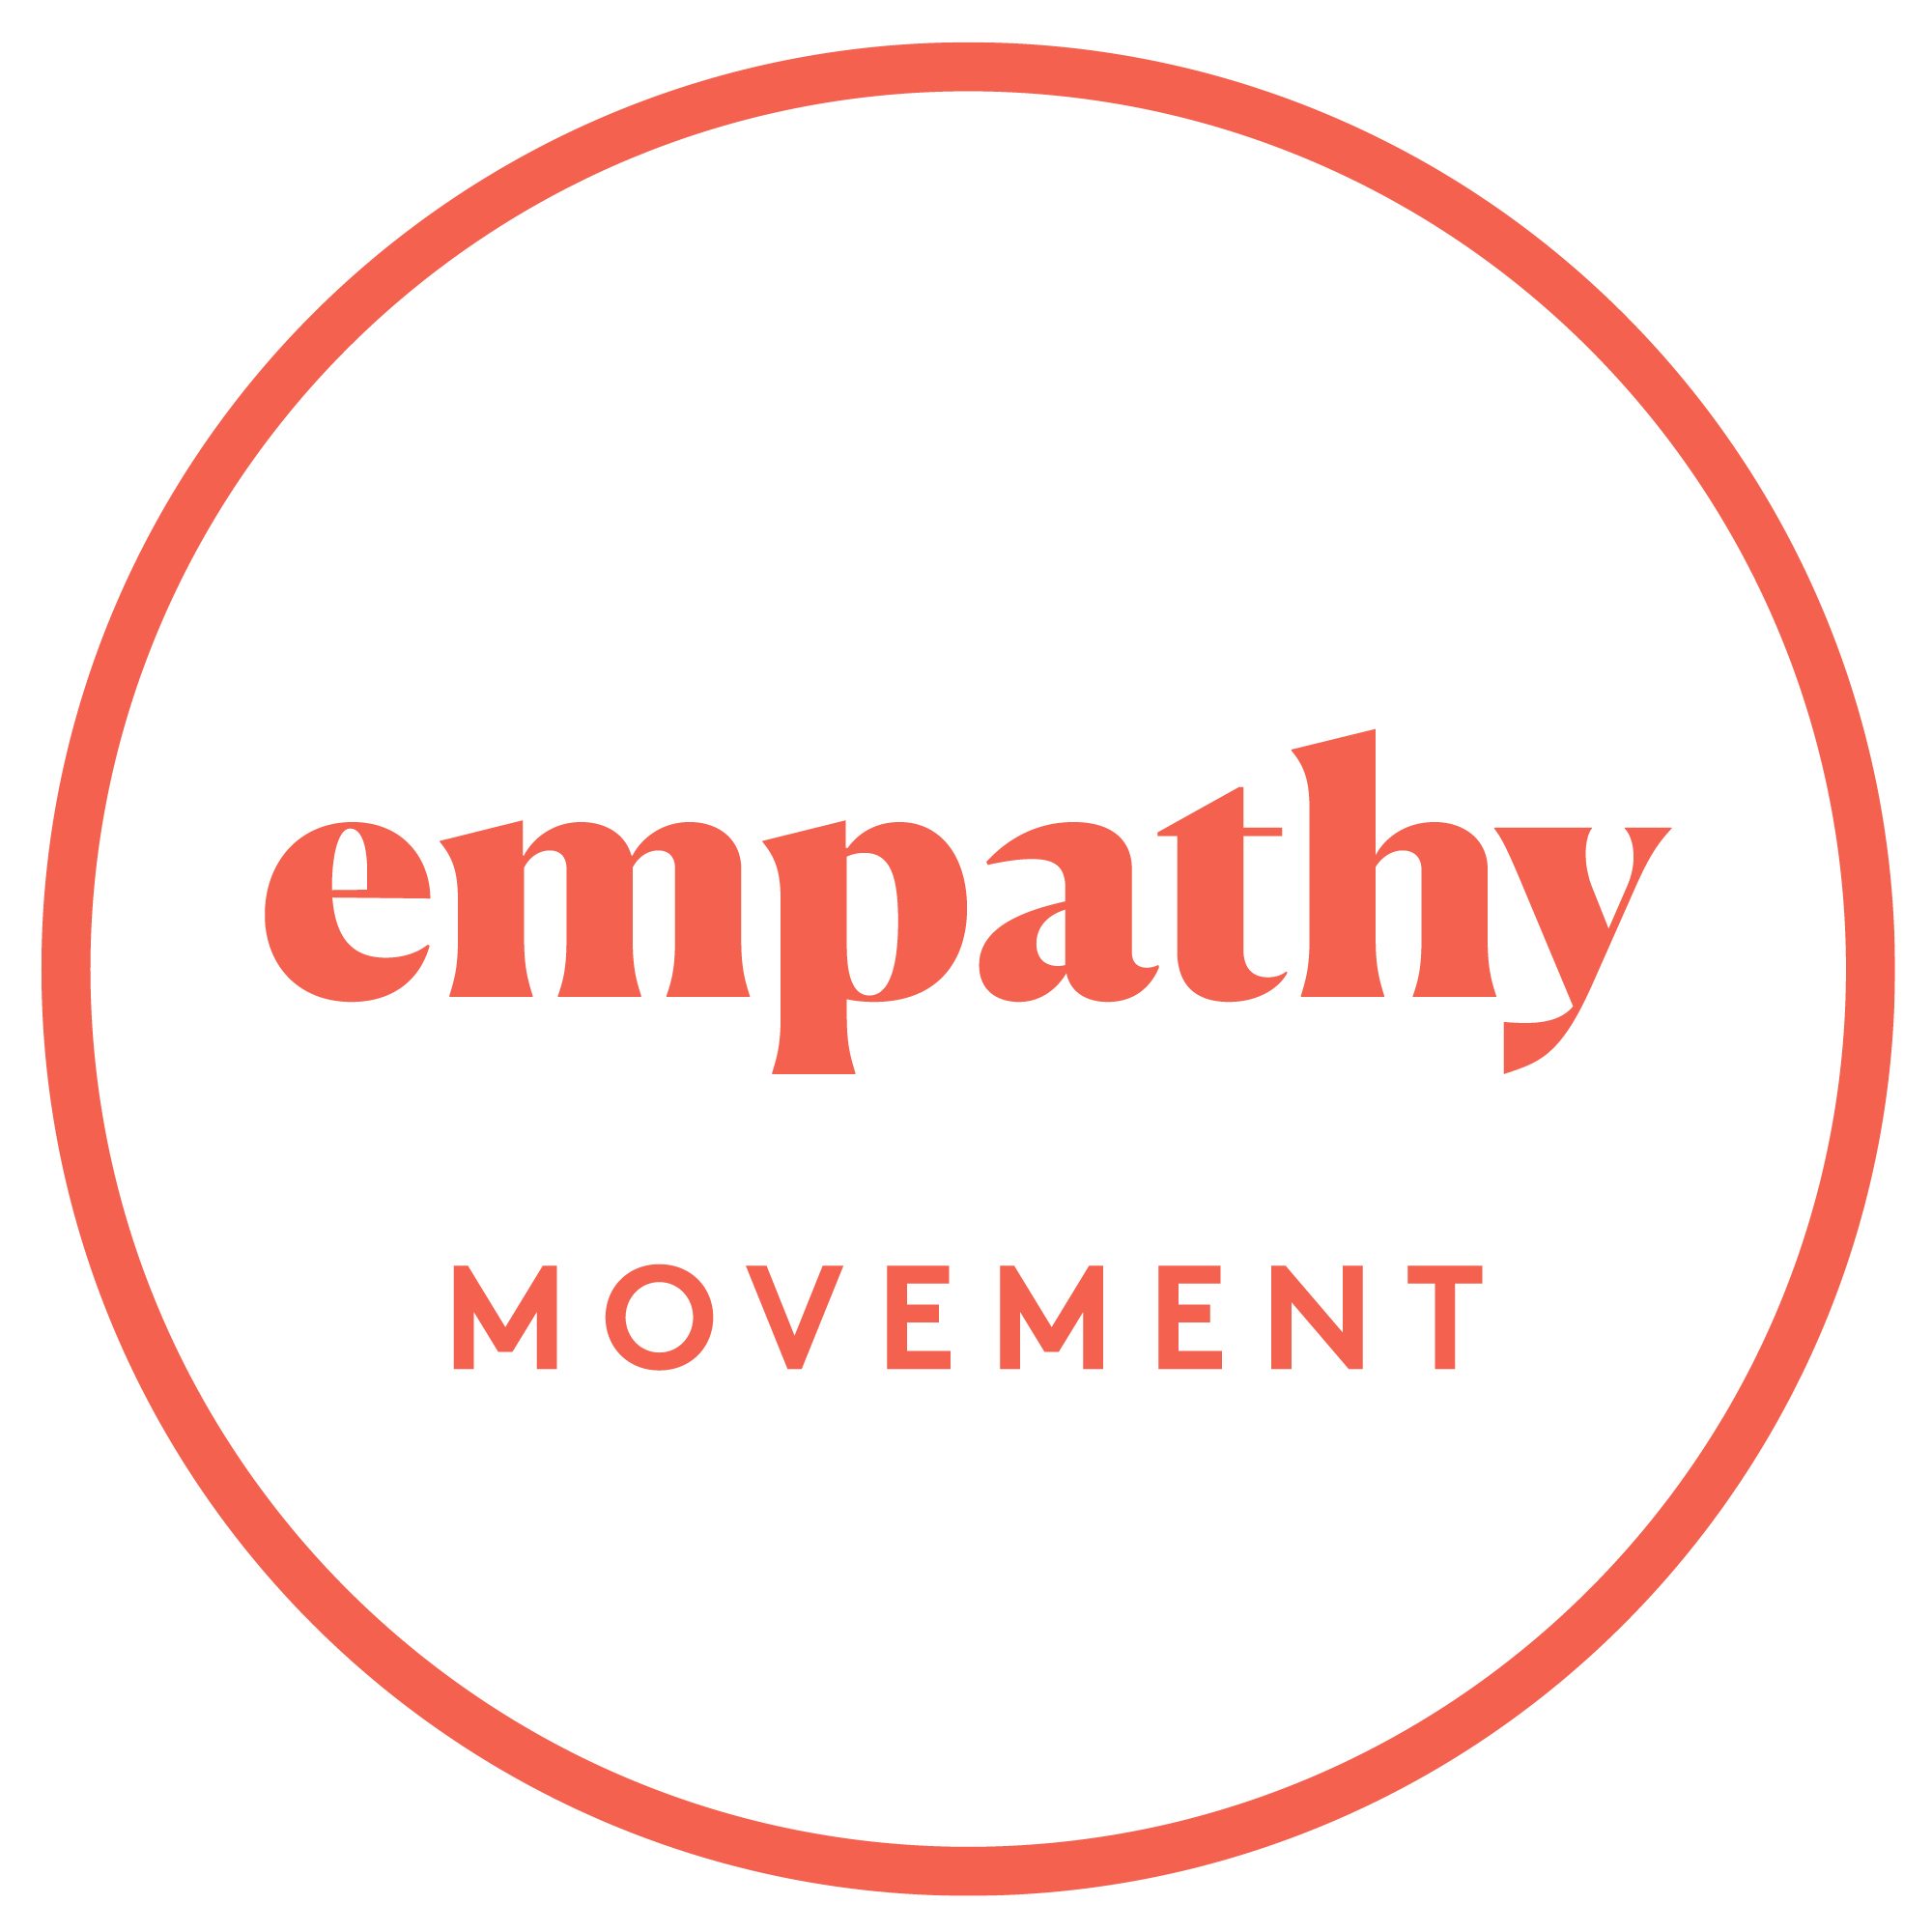 Empathy Movement logo